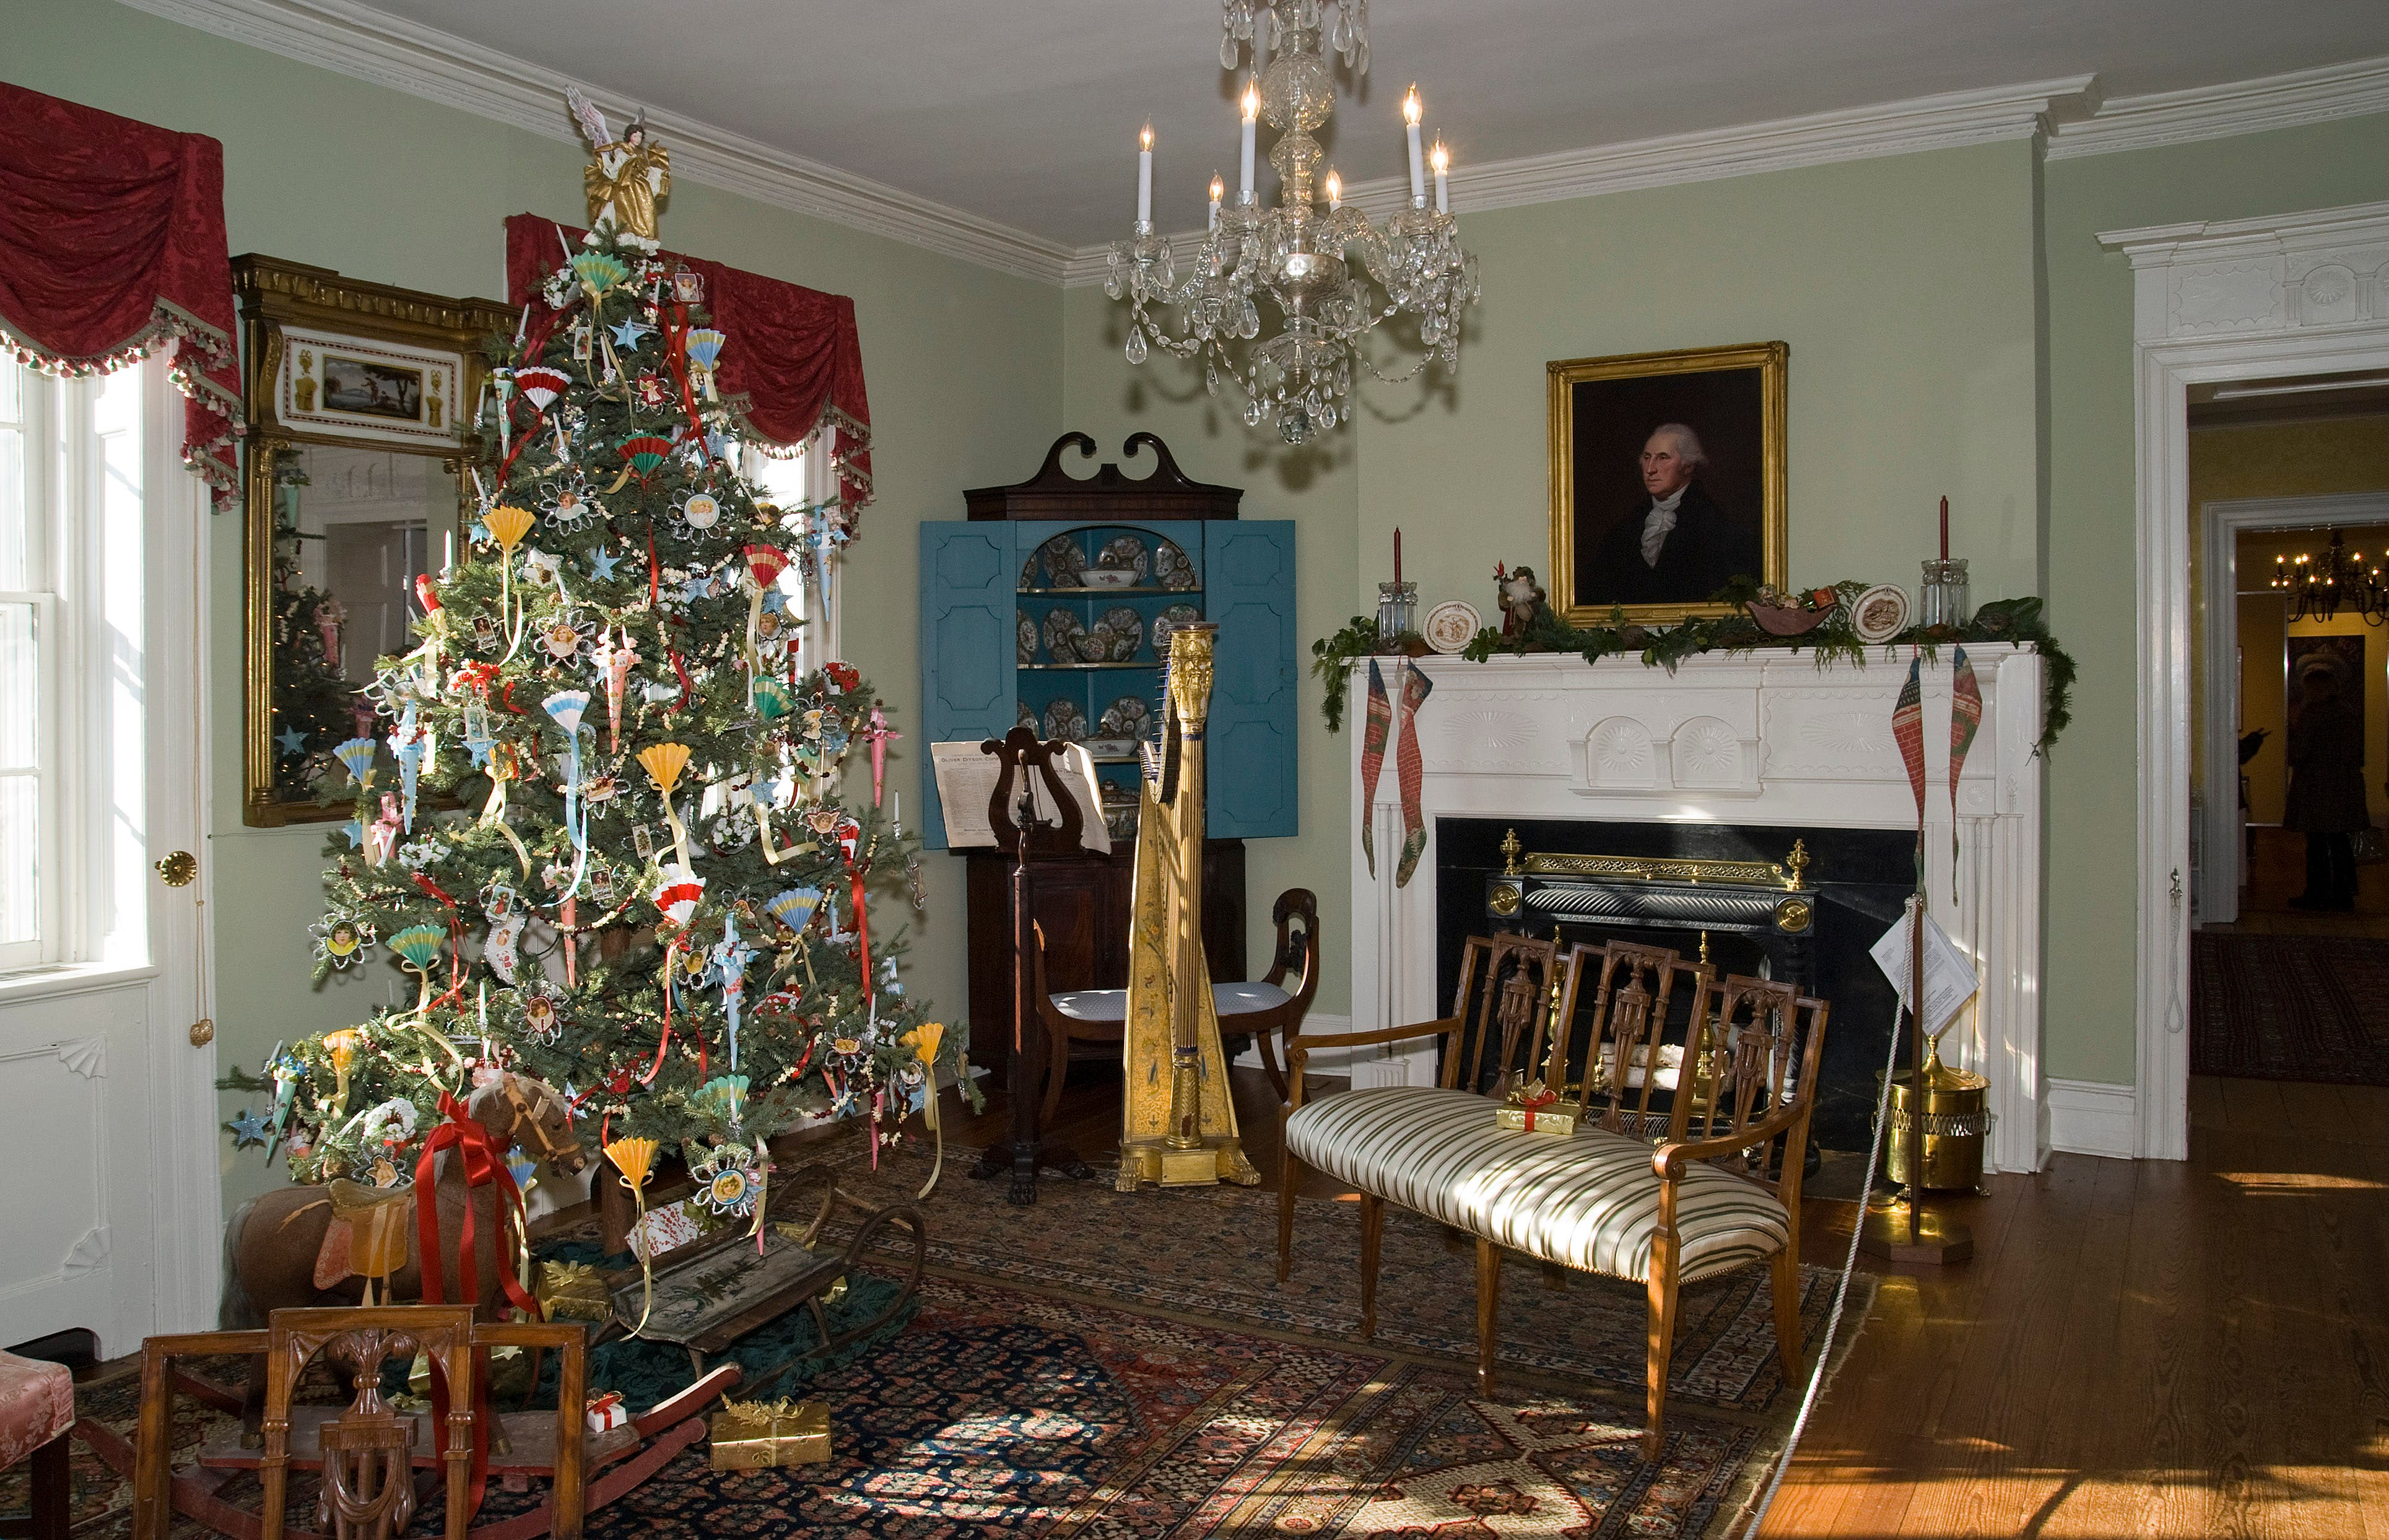 Macculloch Hall Historical Museum